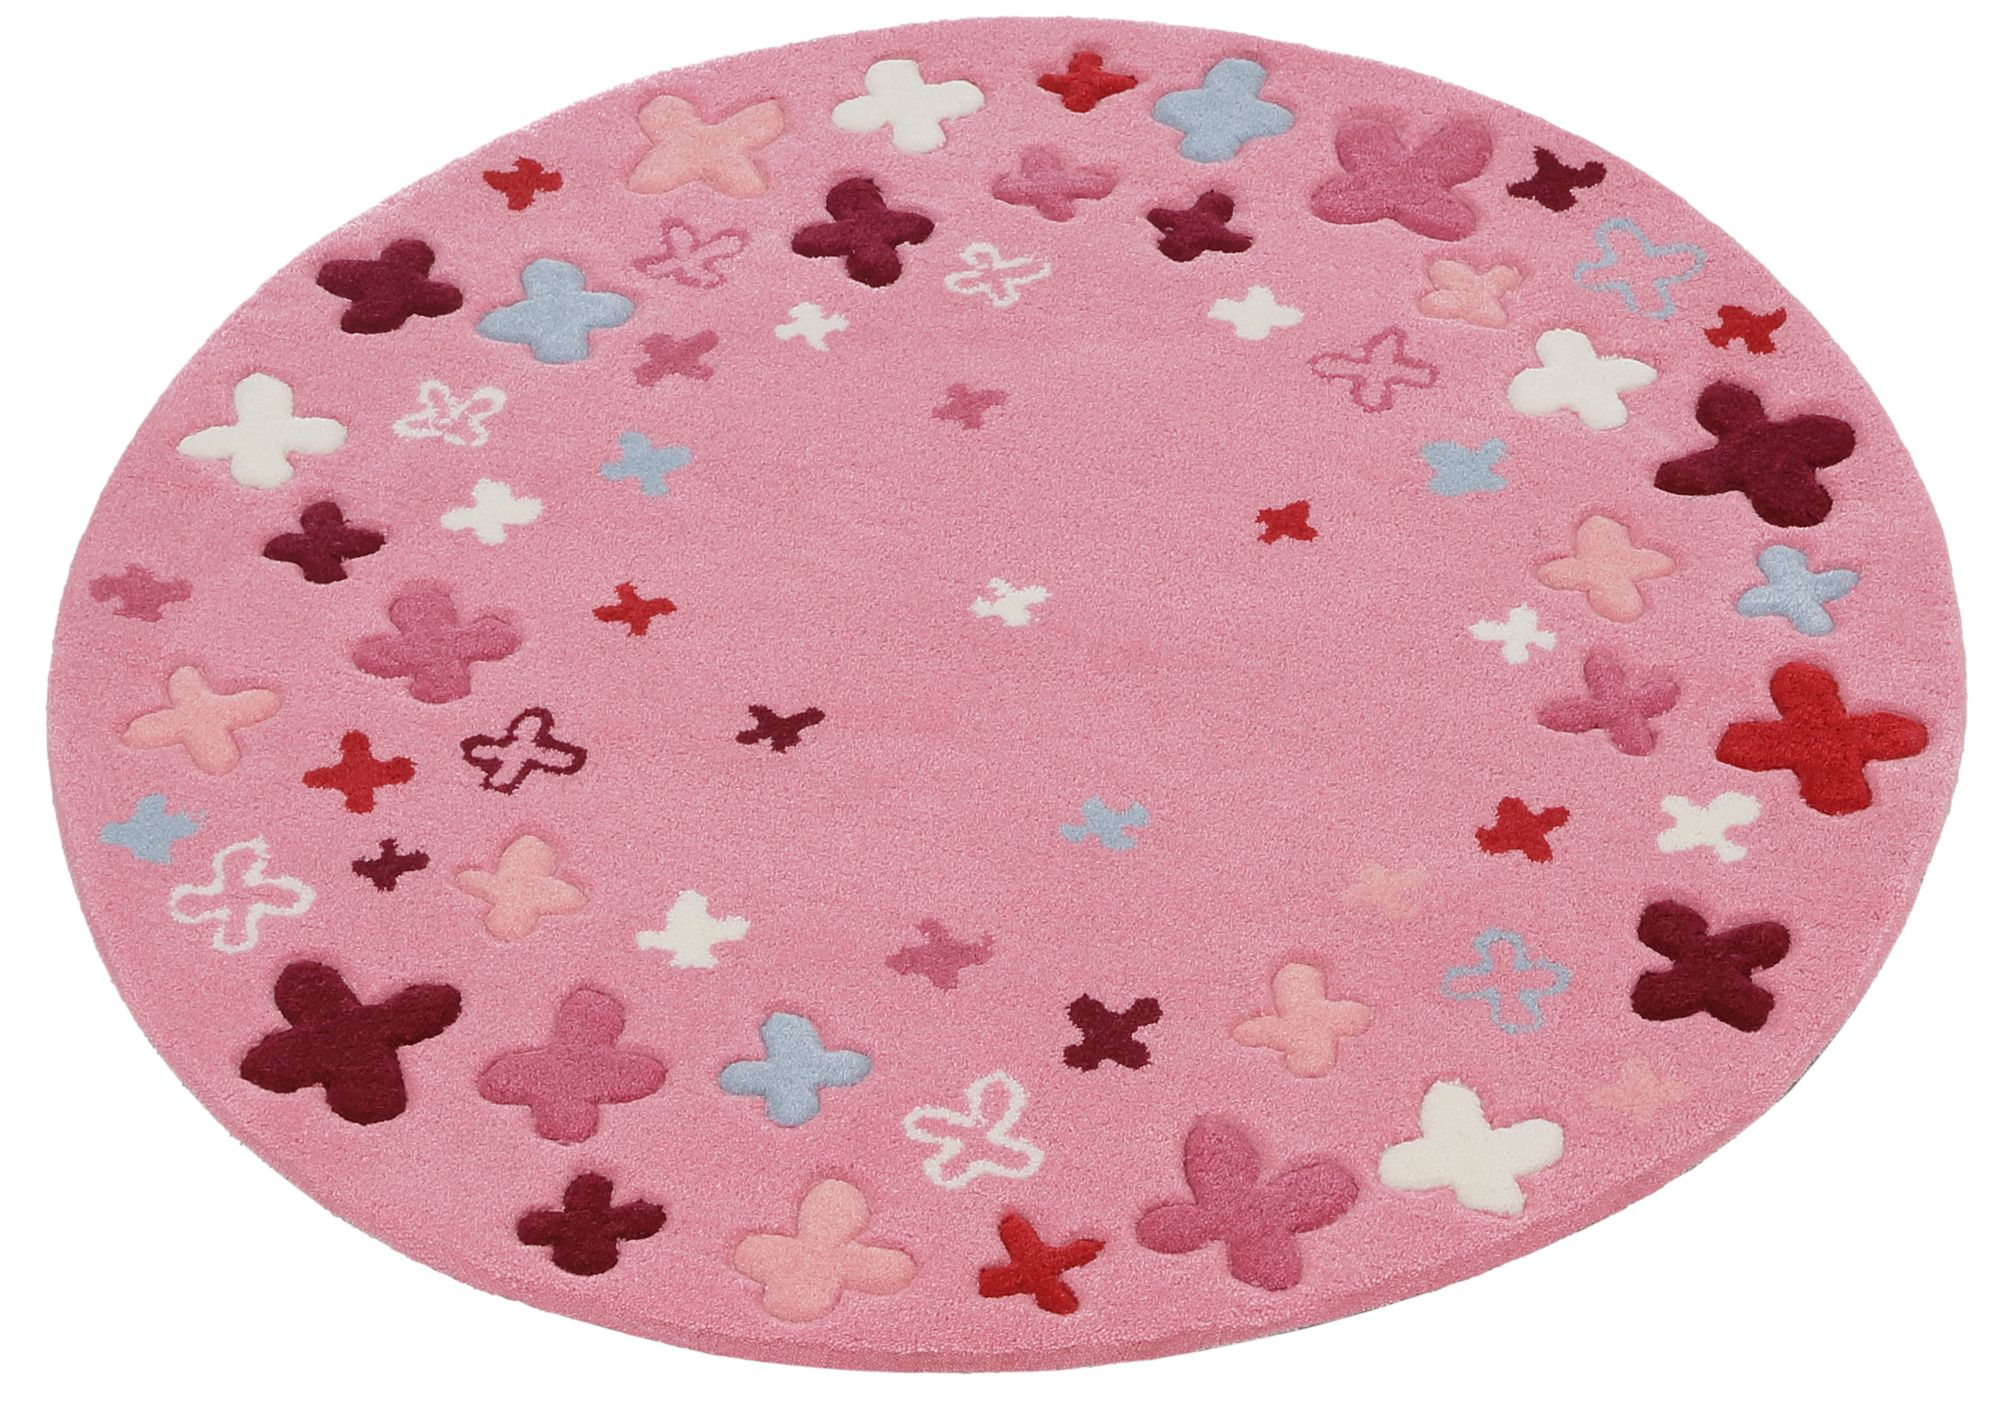 ESPRIT HOME Kinder-Teppich, Esprit, »Bloom Field«, handgetuftet